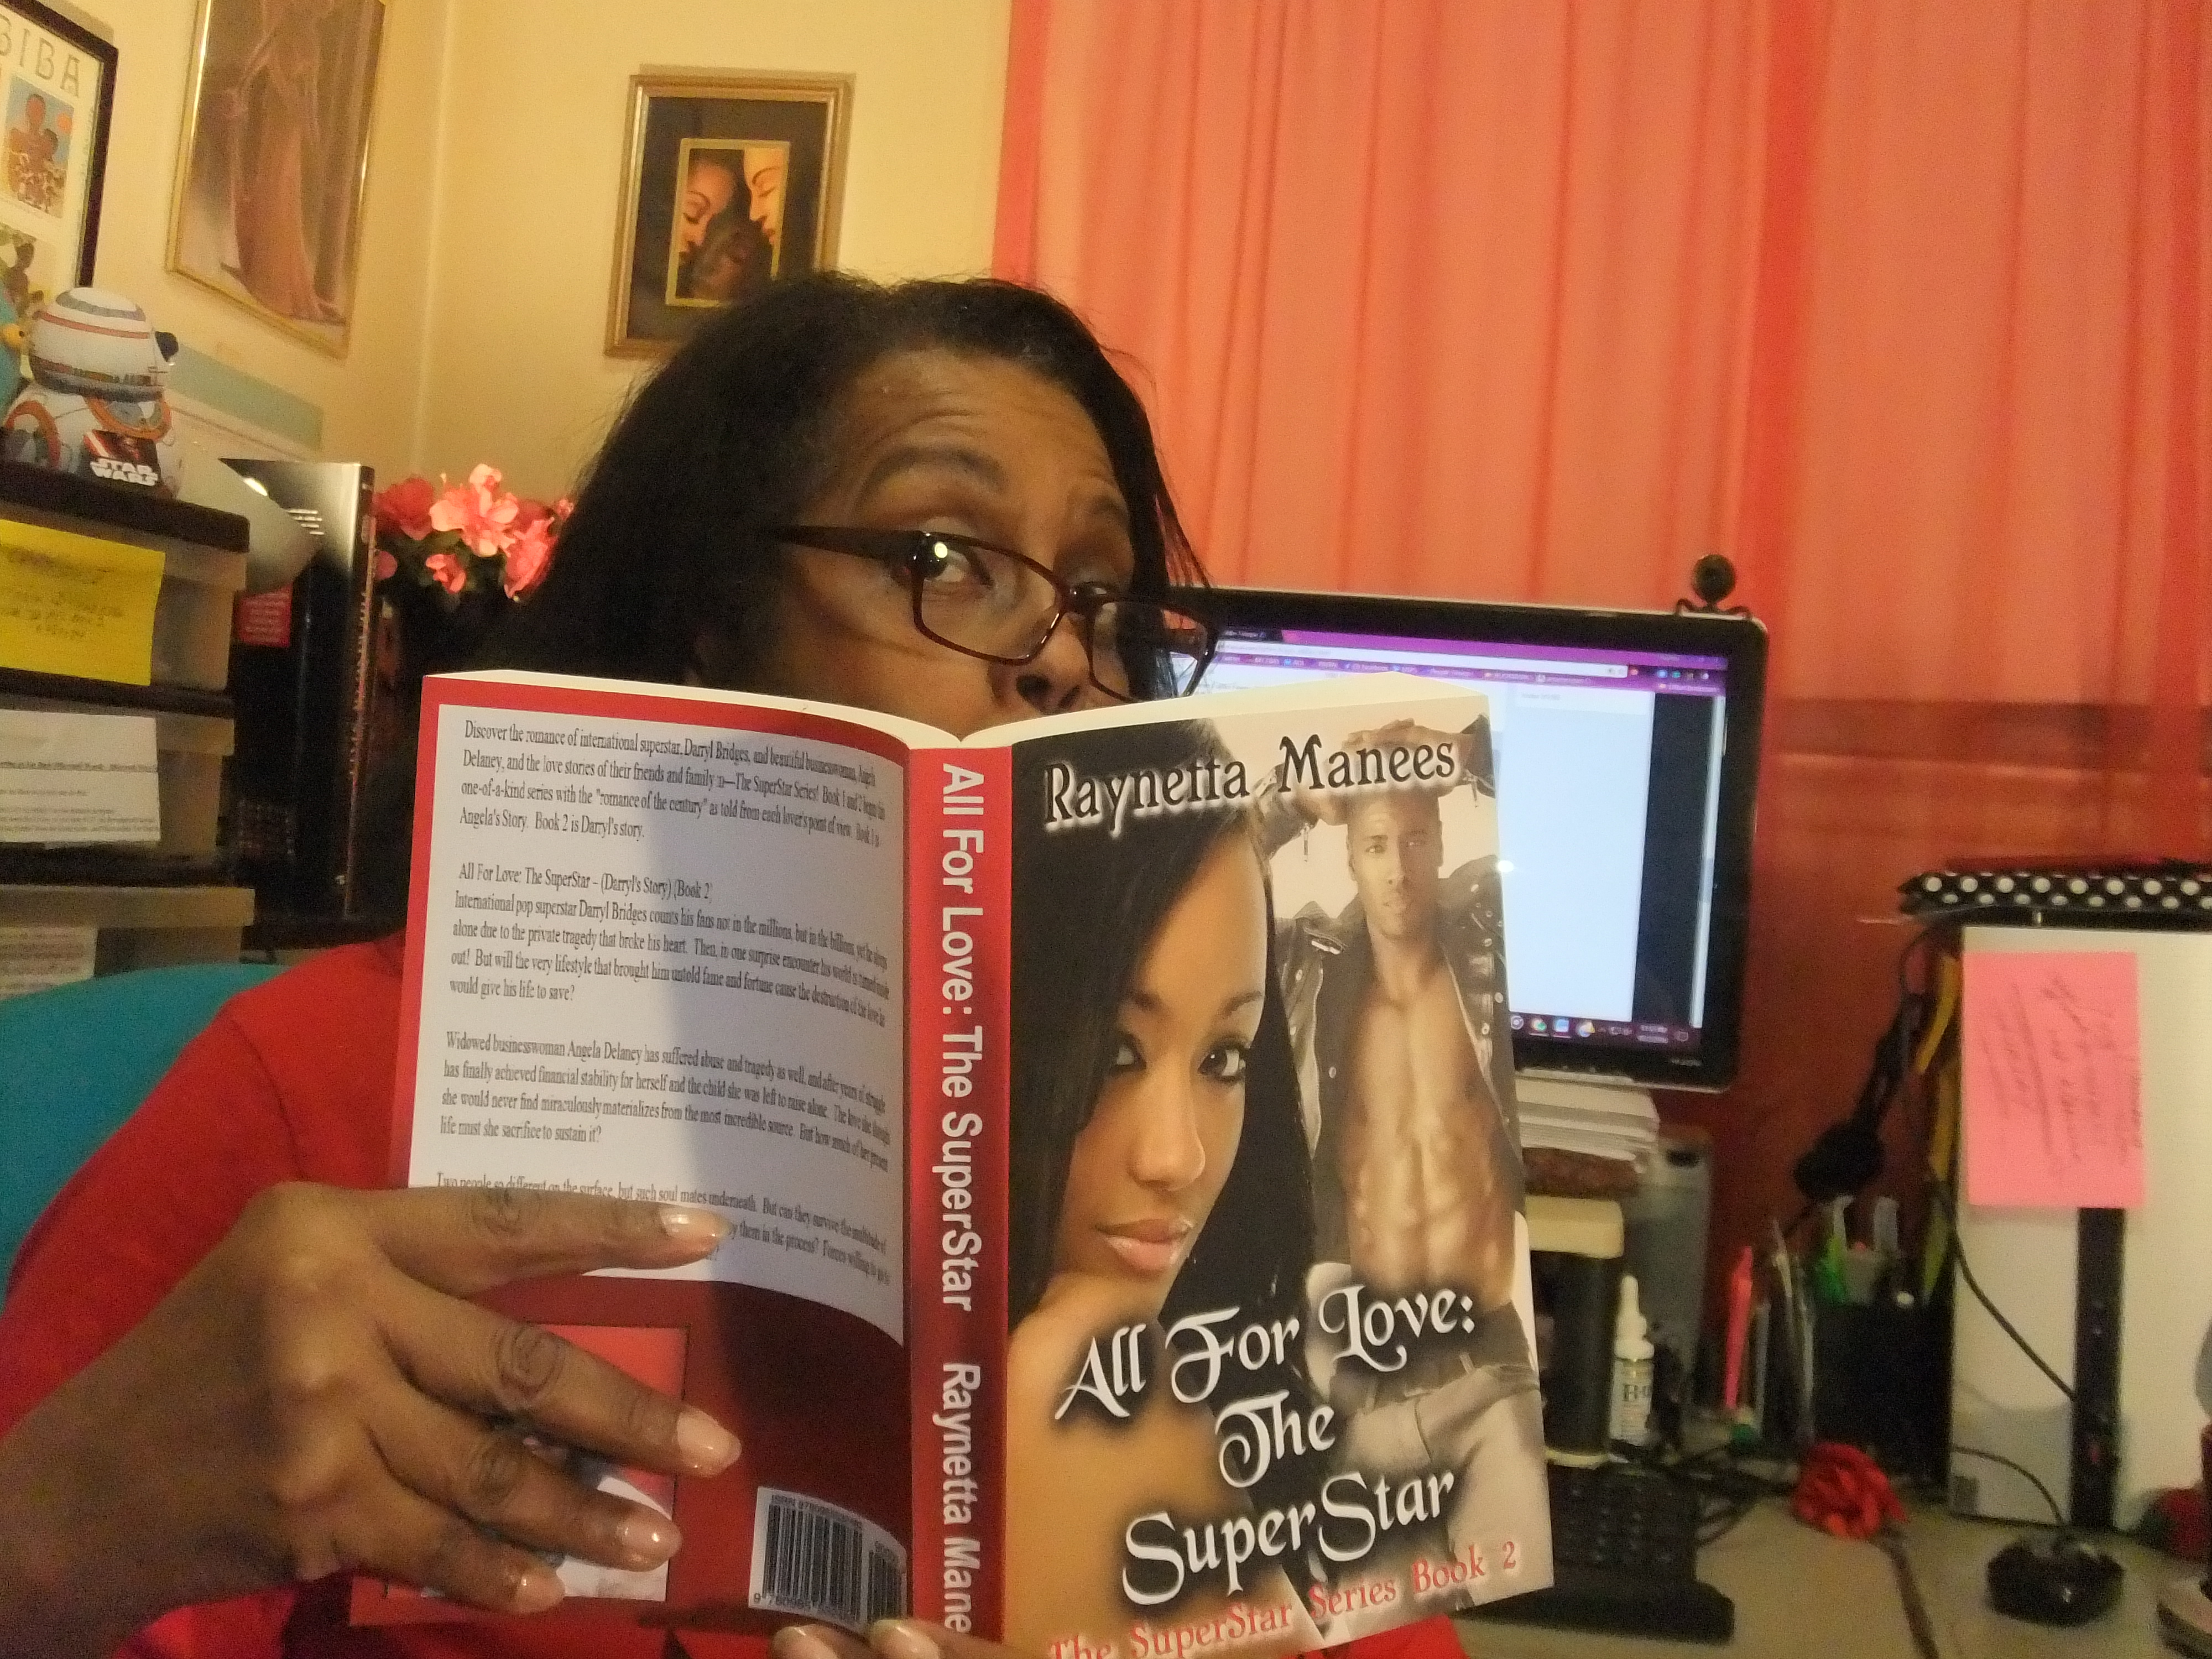 Raynetta Manees Author Page on Facebook